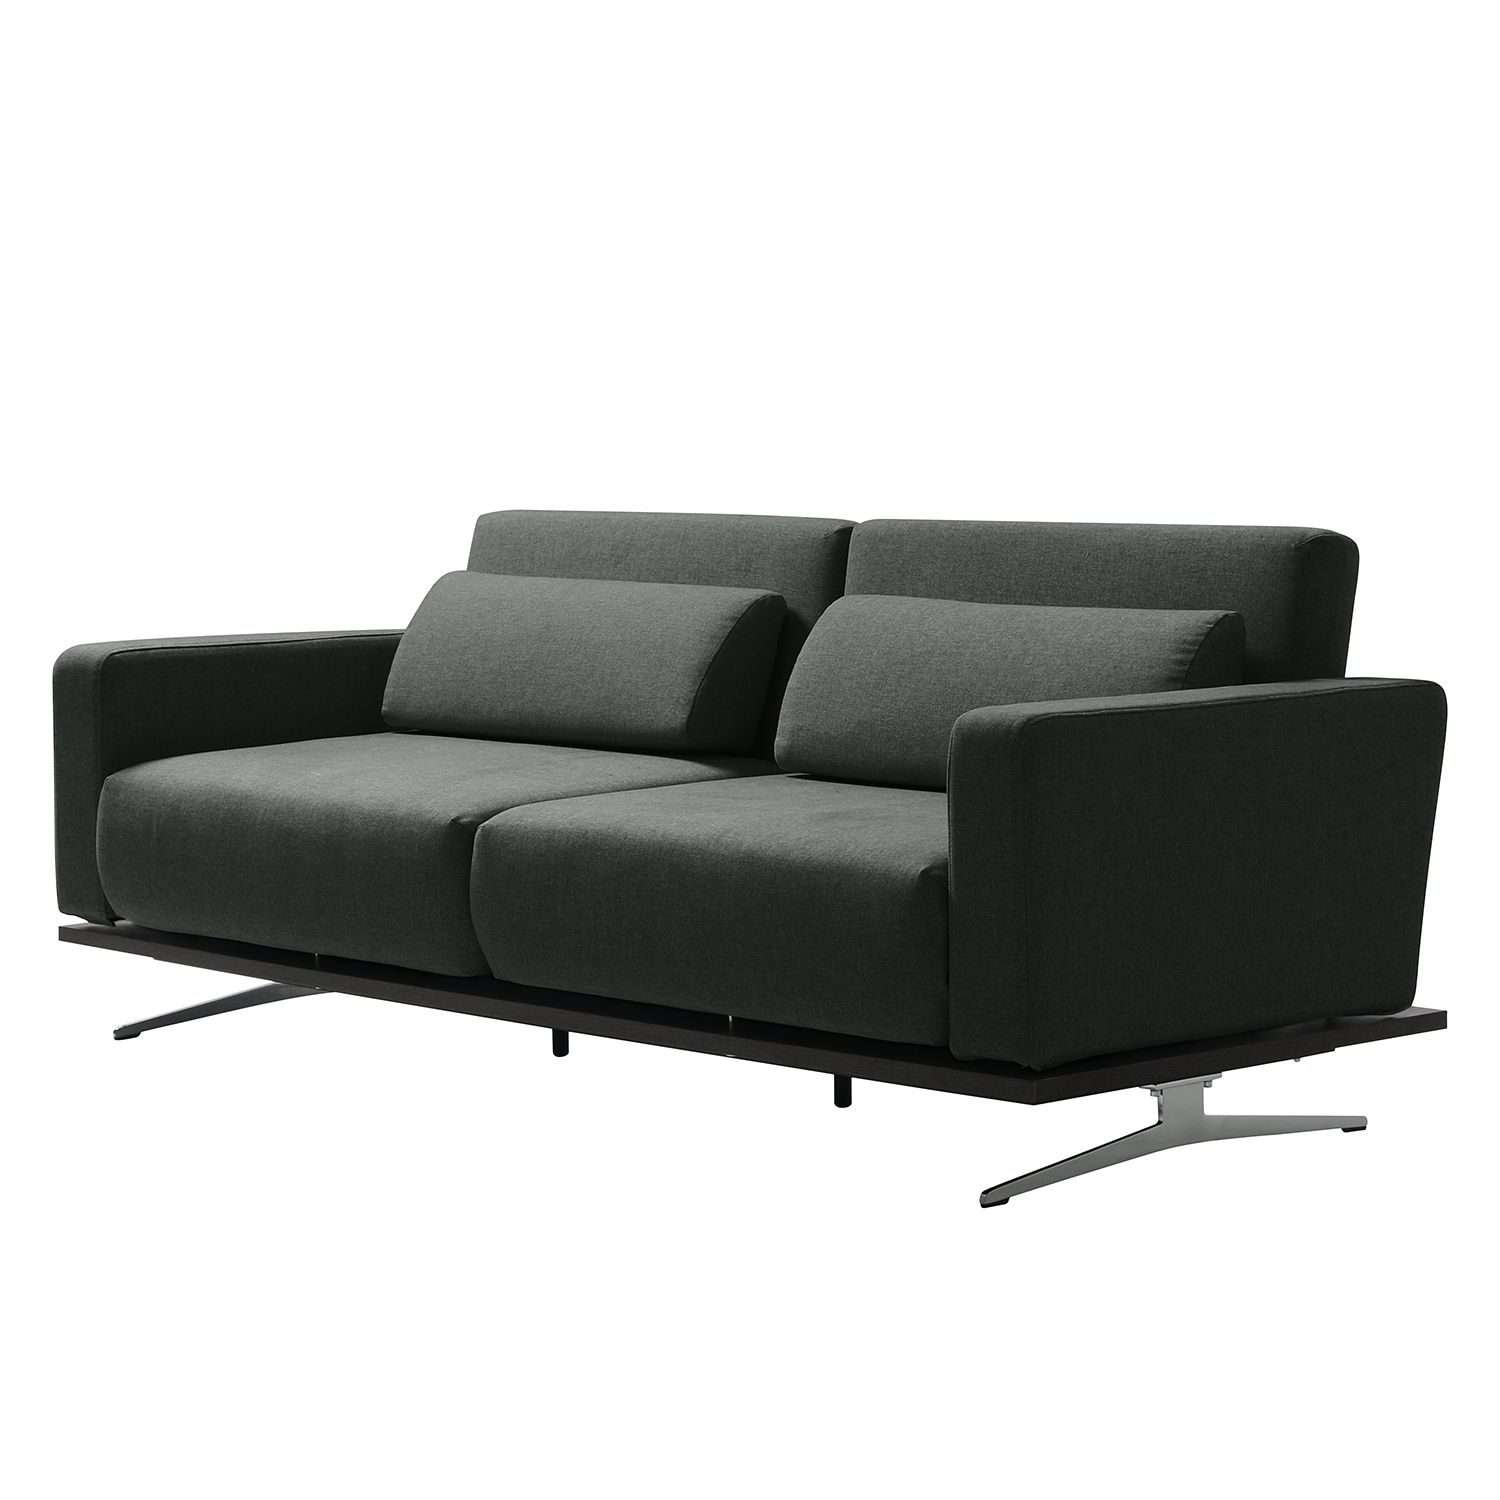 Schlafsofa Copperfield Schlafsofa Copperfield I Webstoff - Stoff Nova ...